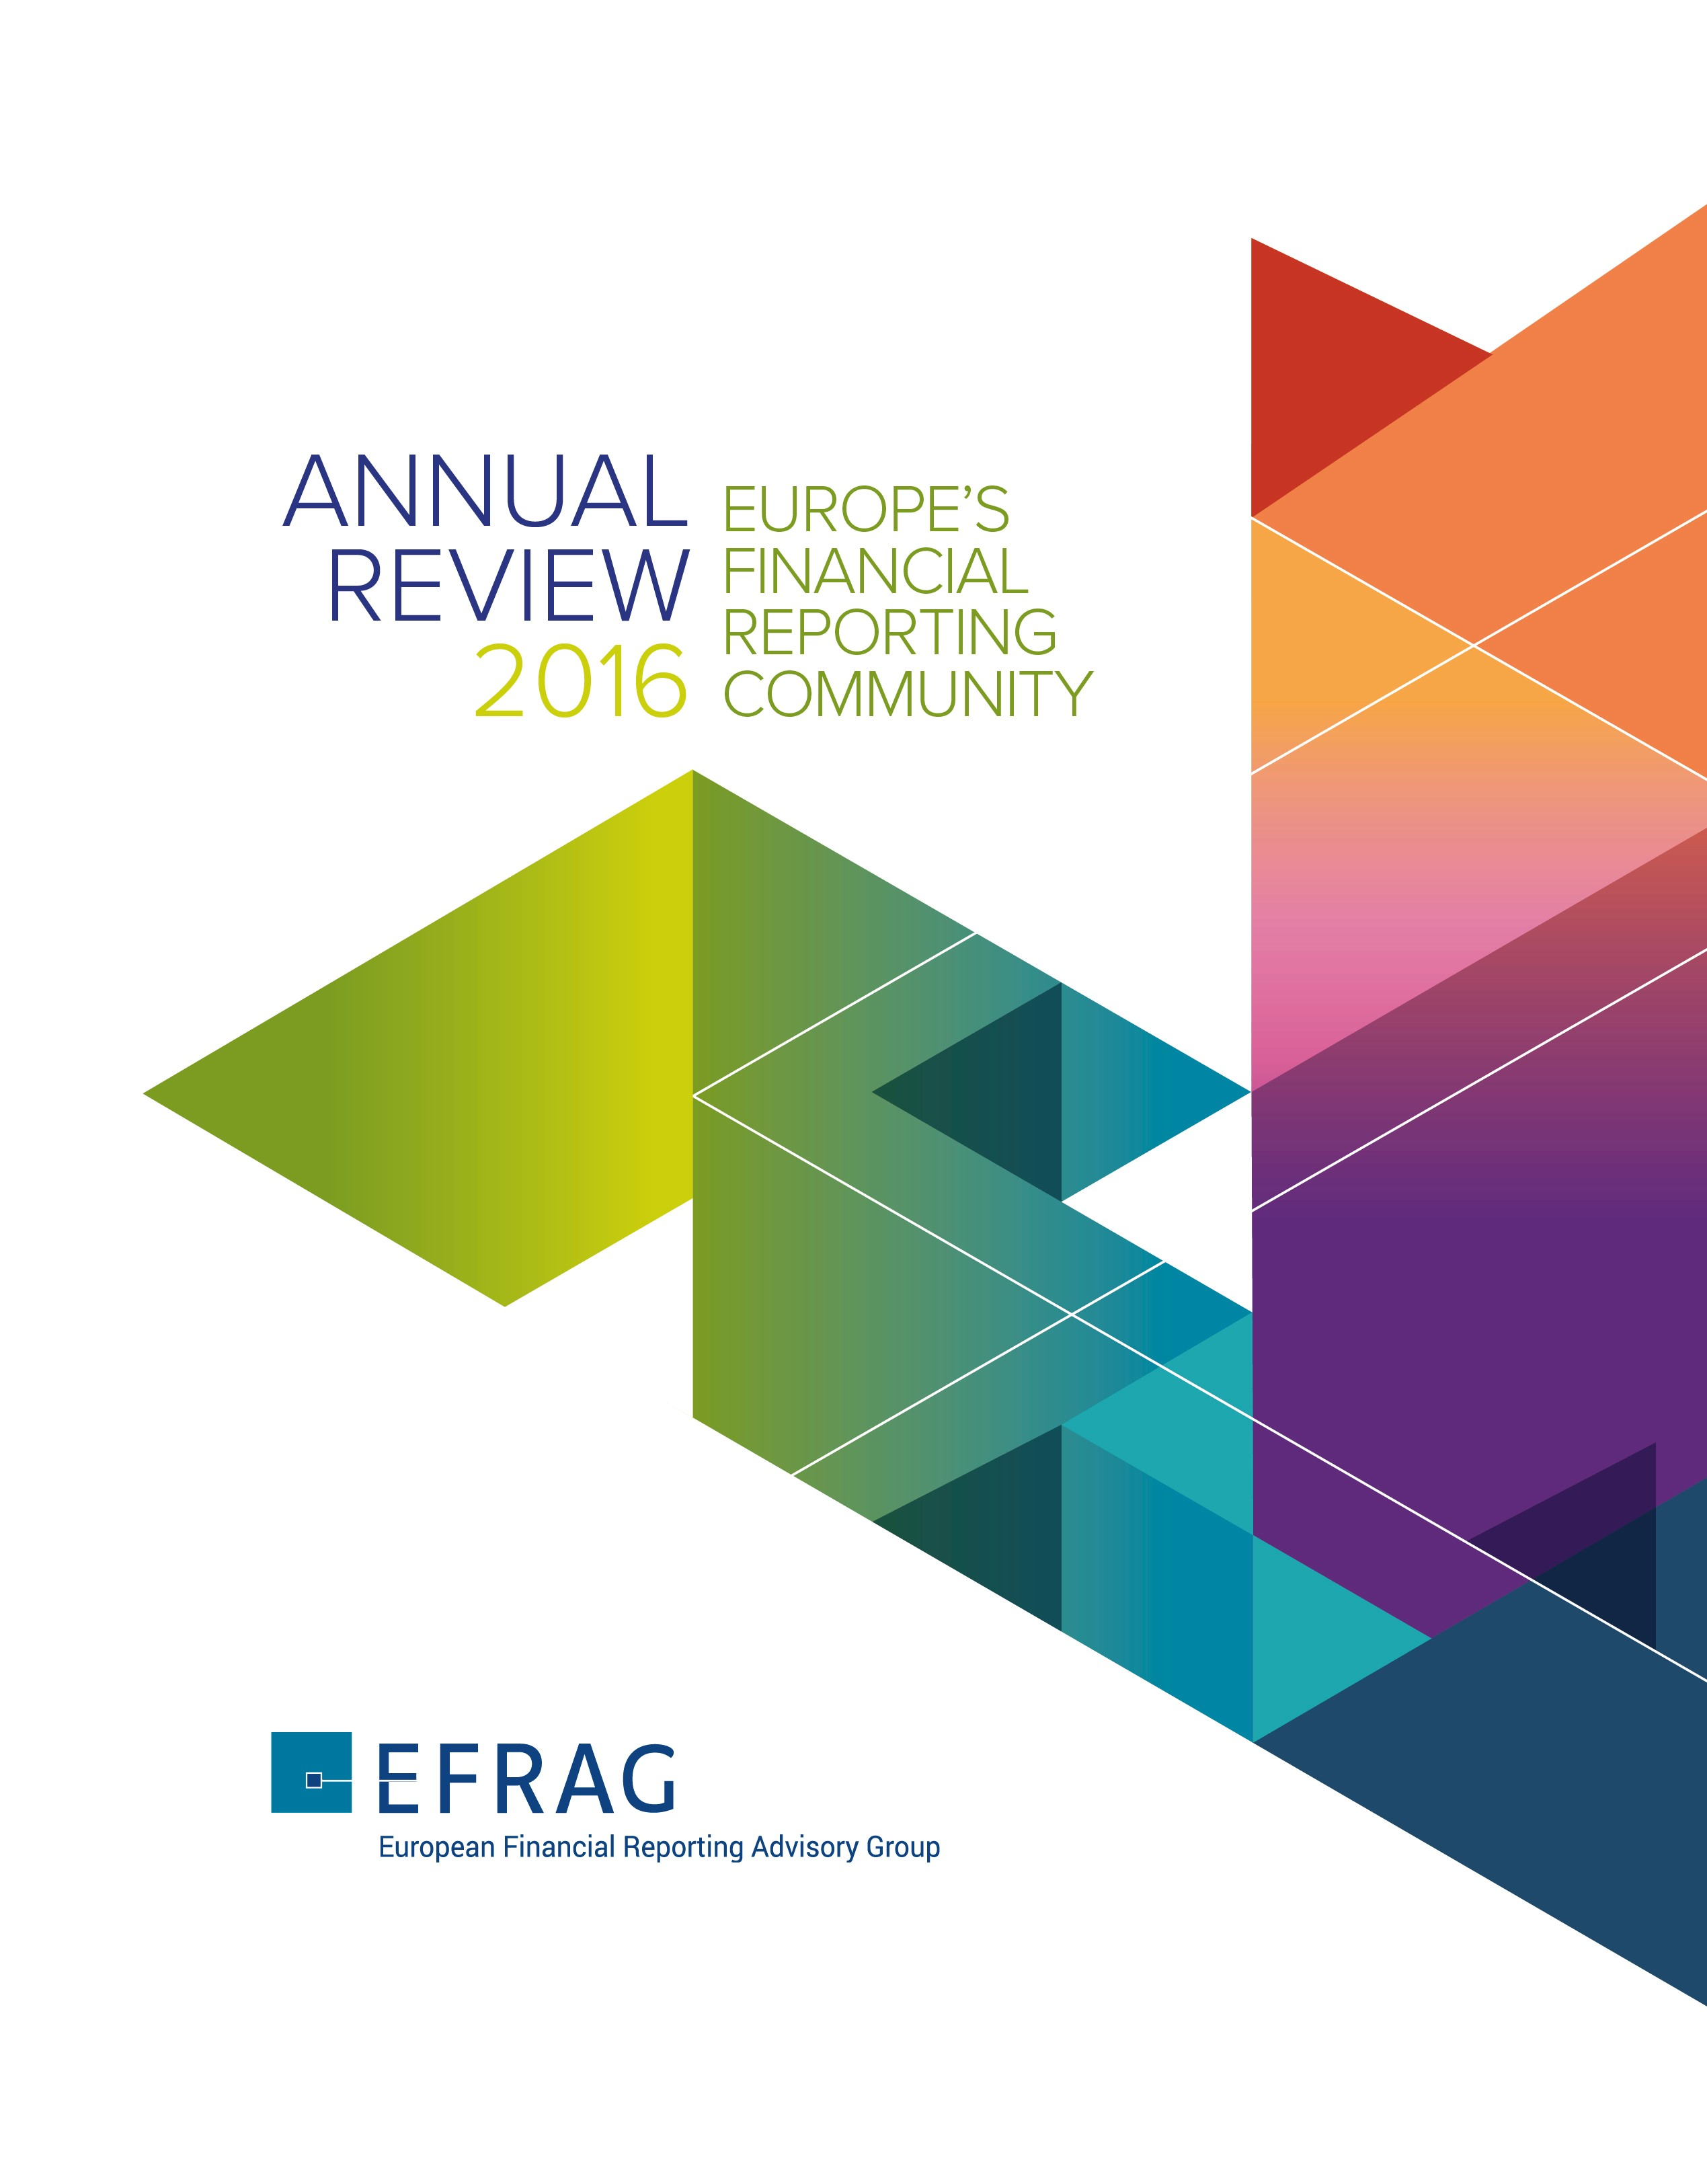 annual review 2016 cover.jpg